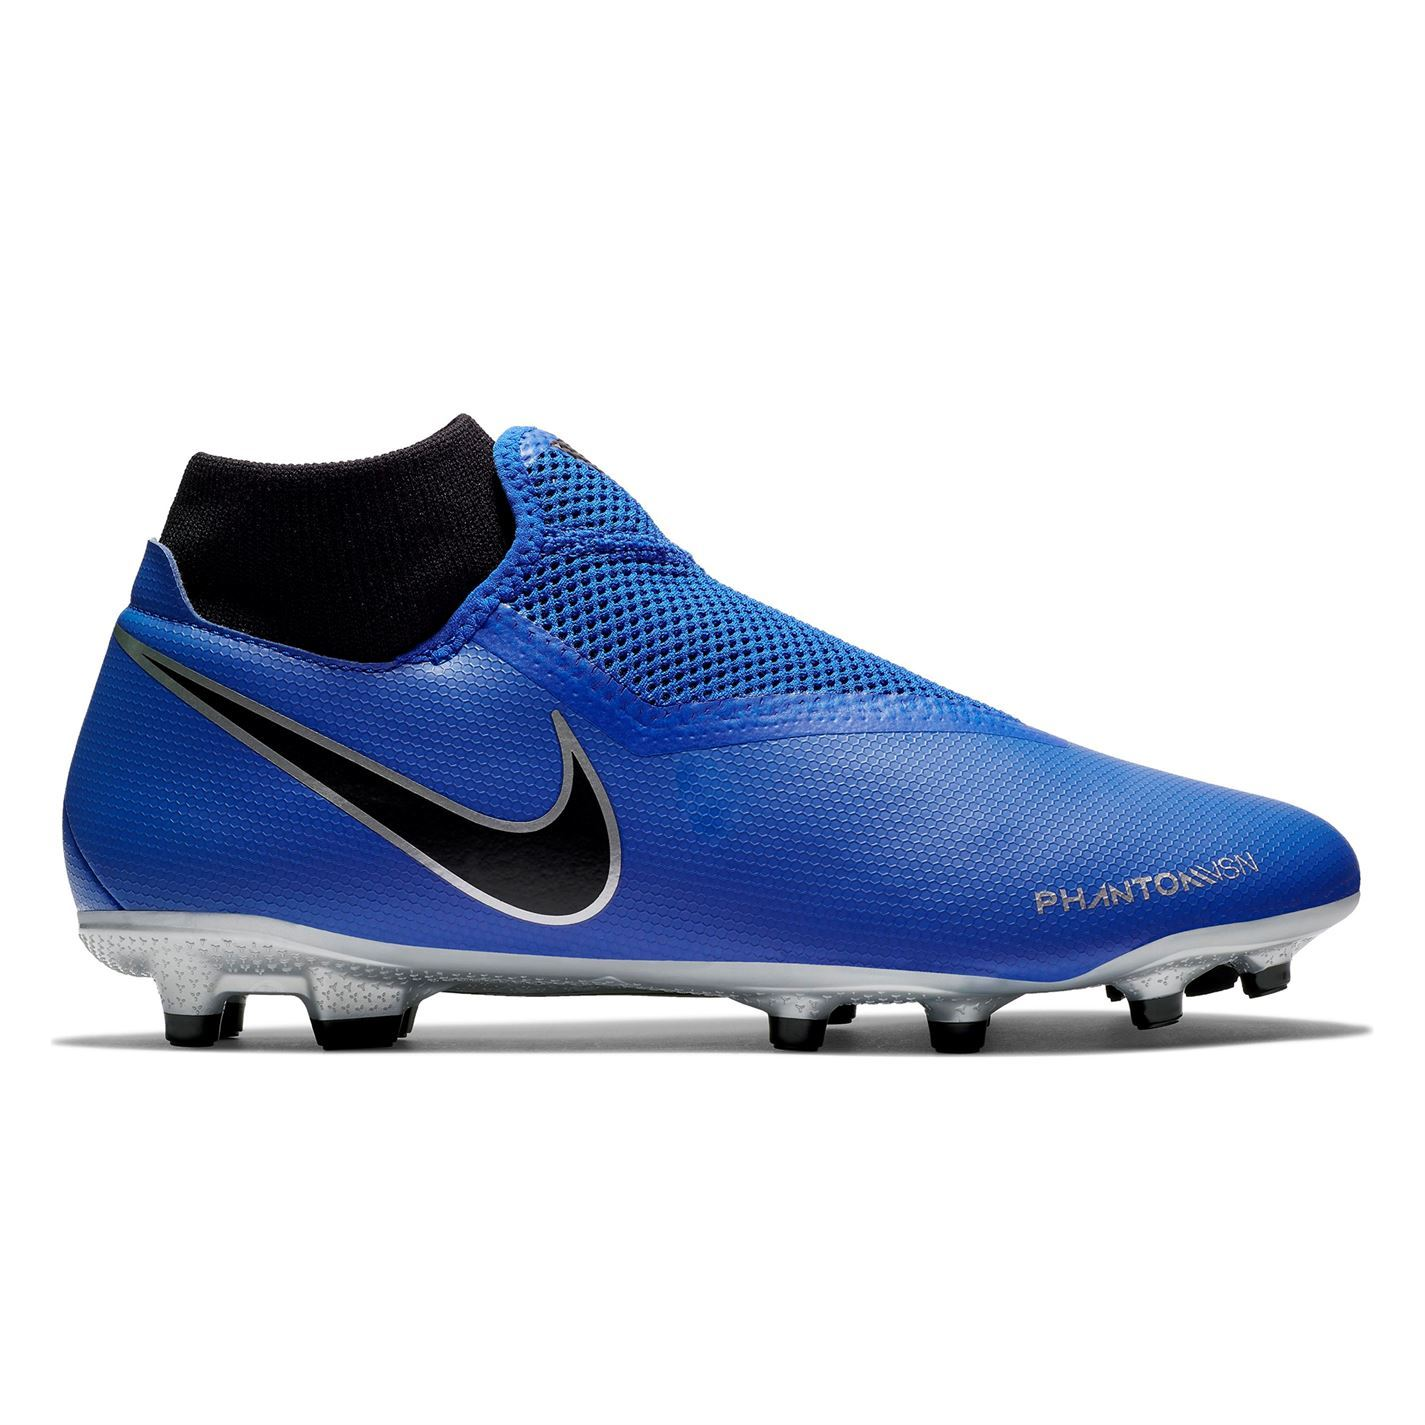 9030d77a8c2 ... Nike Phantom Vision Academy DF FG Firm Ground Football Boots Mens  Soccer Cleats